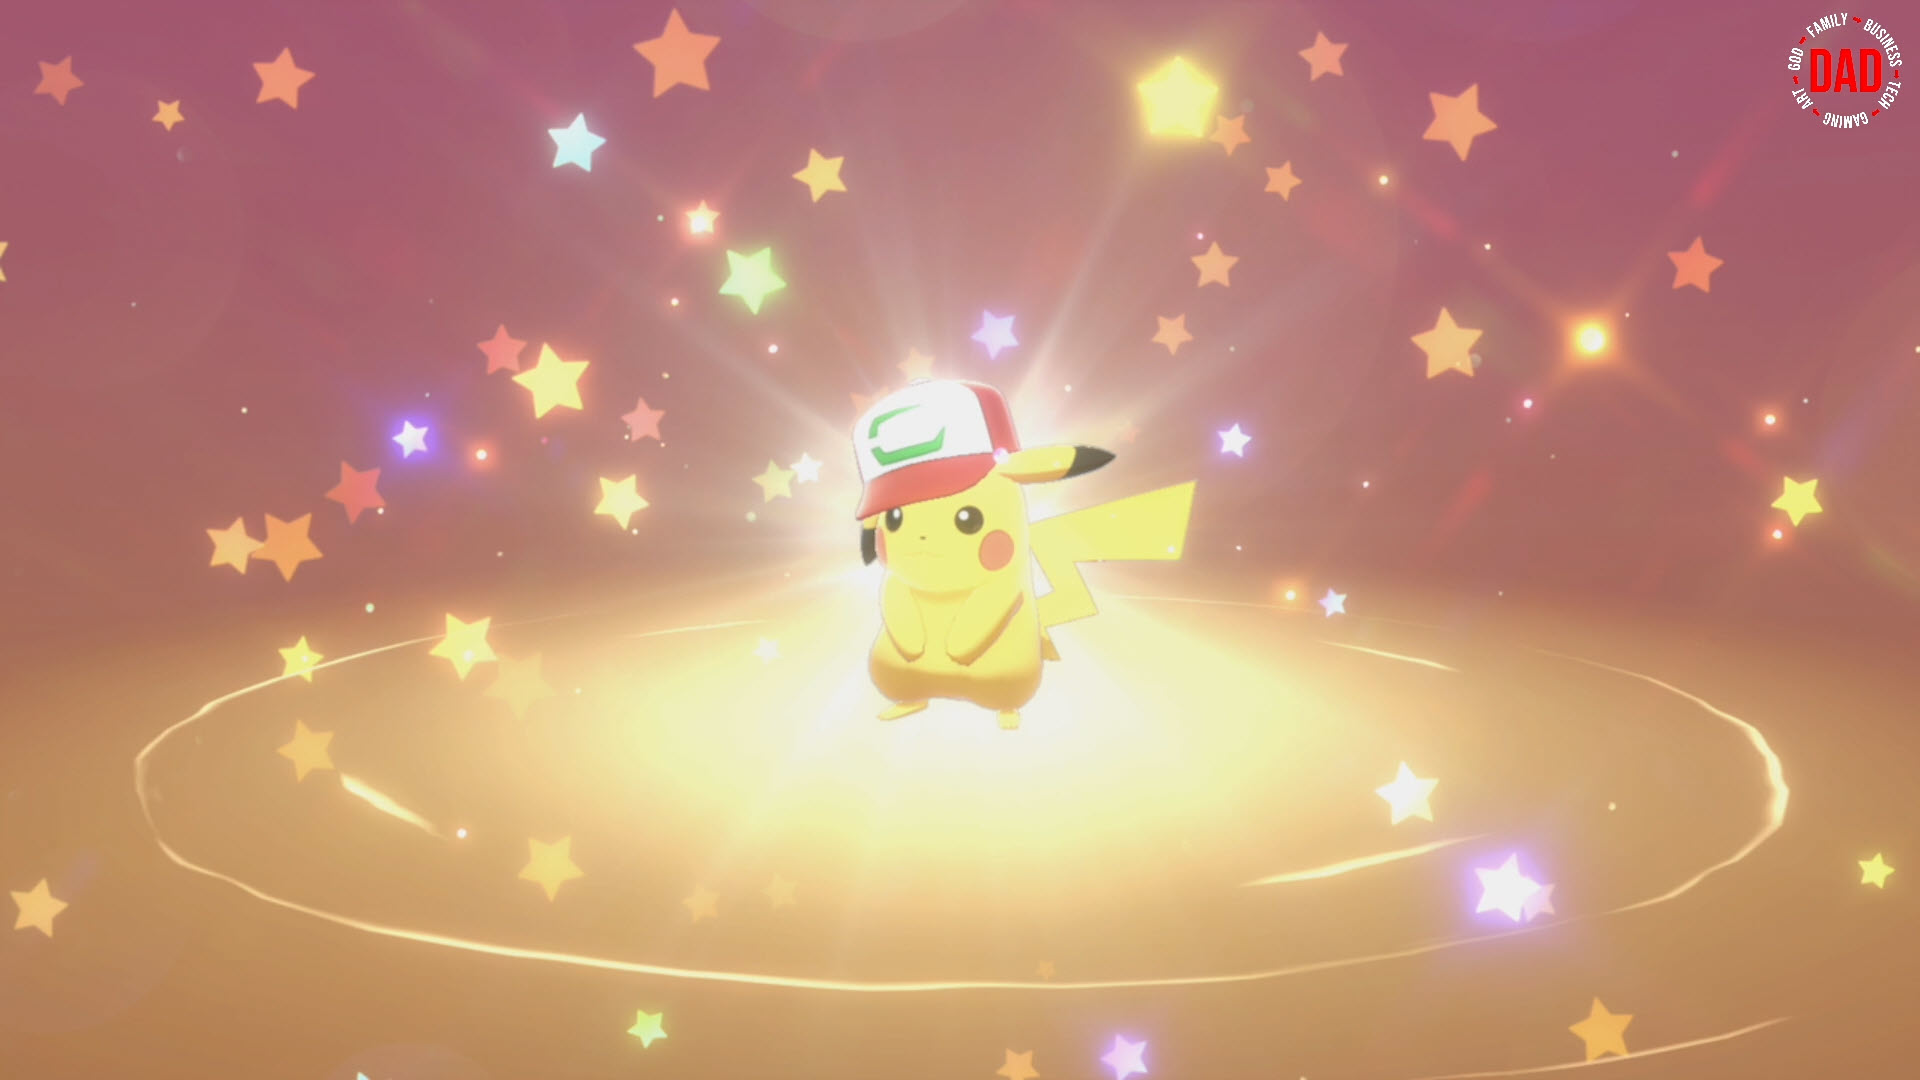 How To Get the FIRST TWO PIKACHU Wearing Ash's Caps in Pokémon Sword or Pokémon Shield